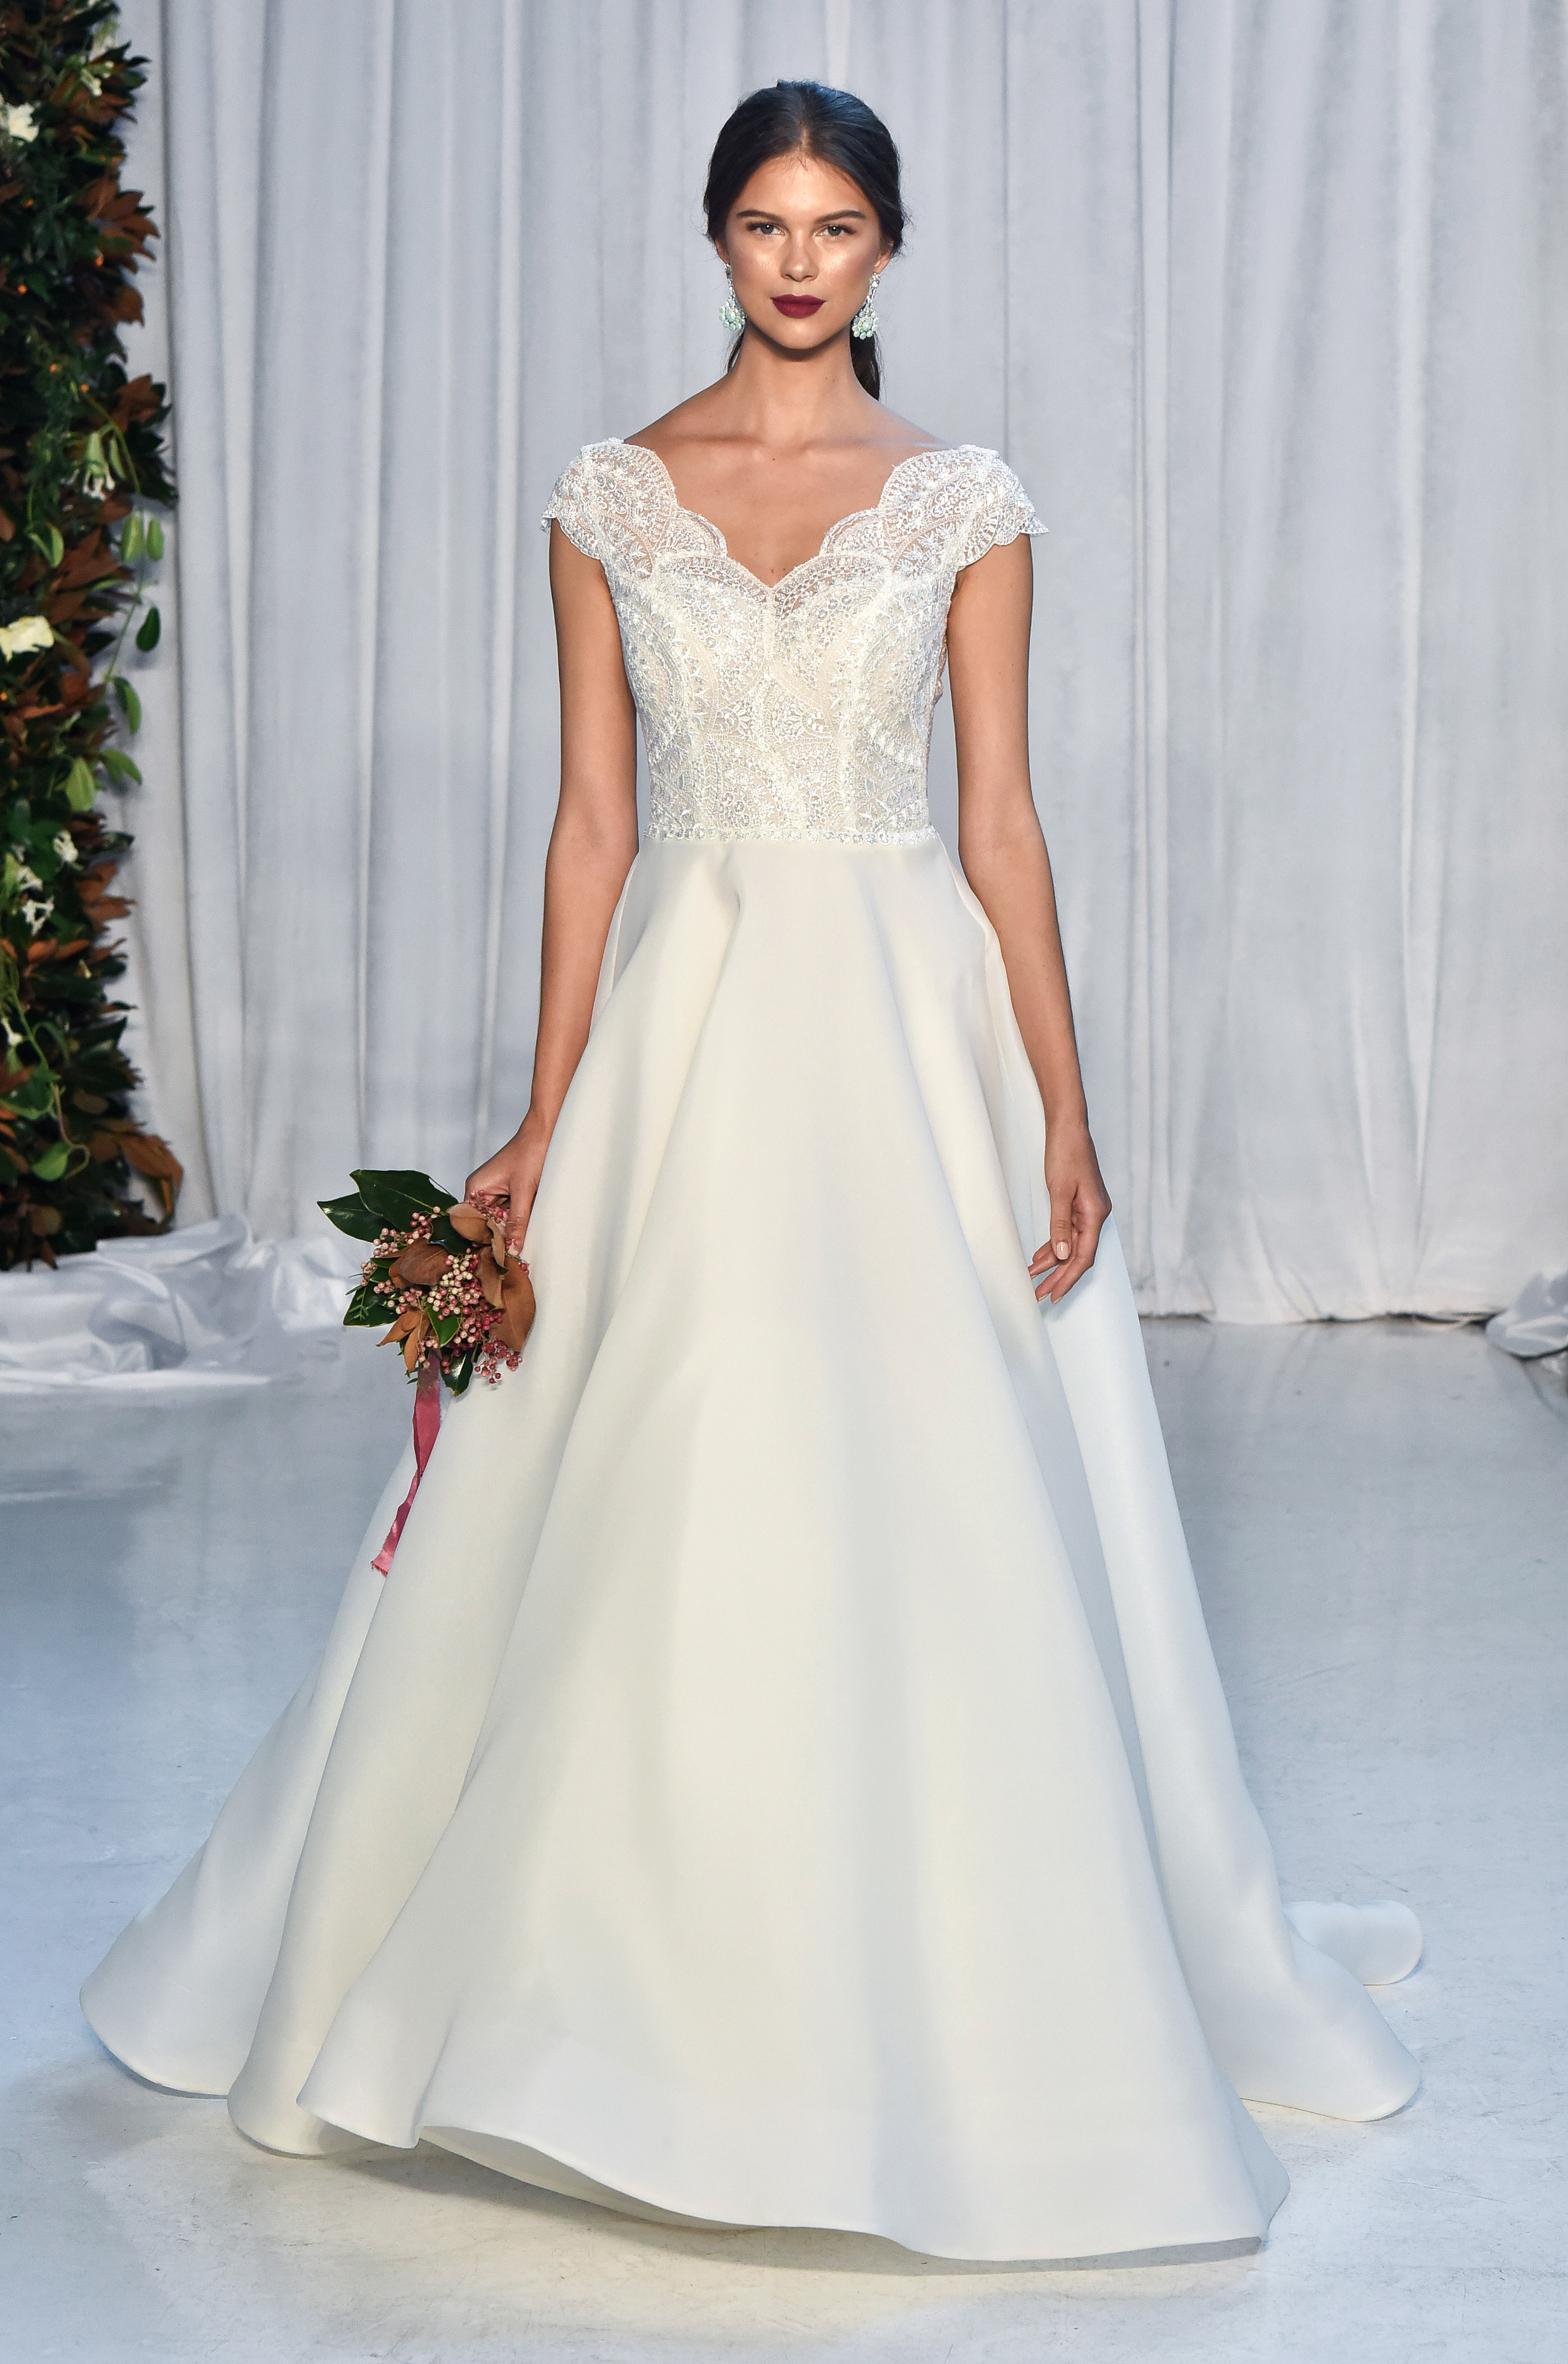 anne barge wedding dress fall 2018 cap sleeves lace top a-line